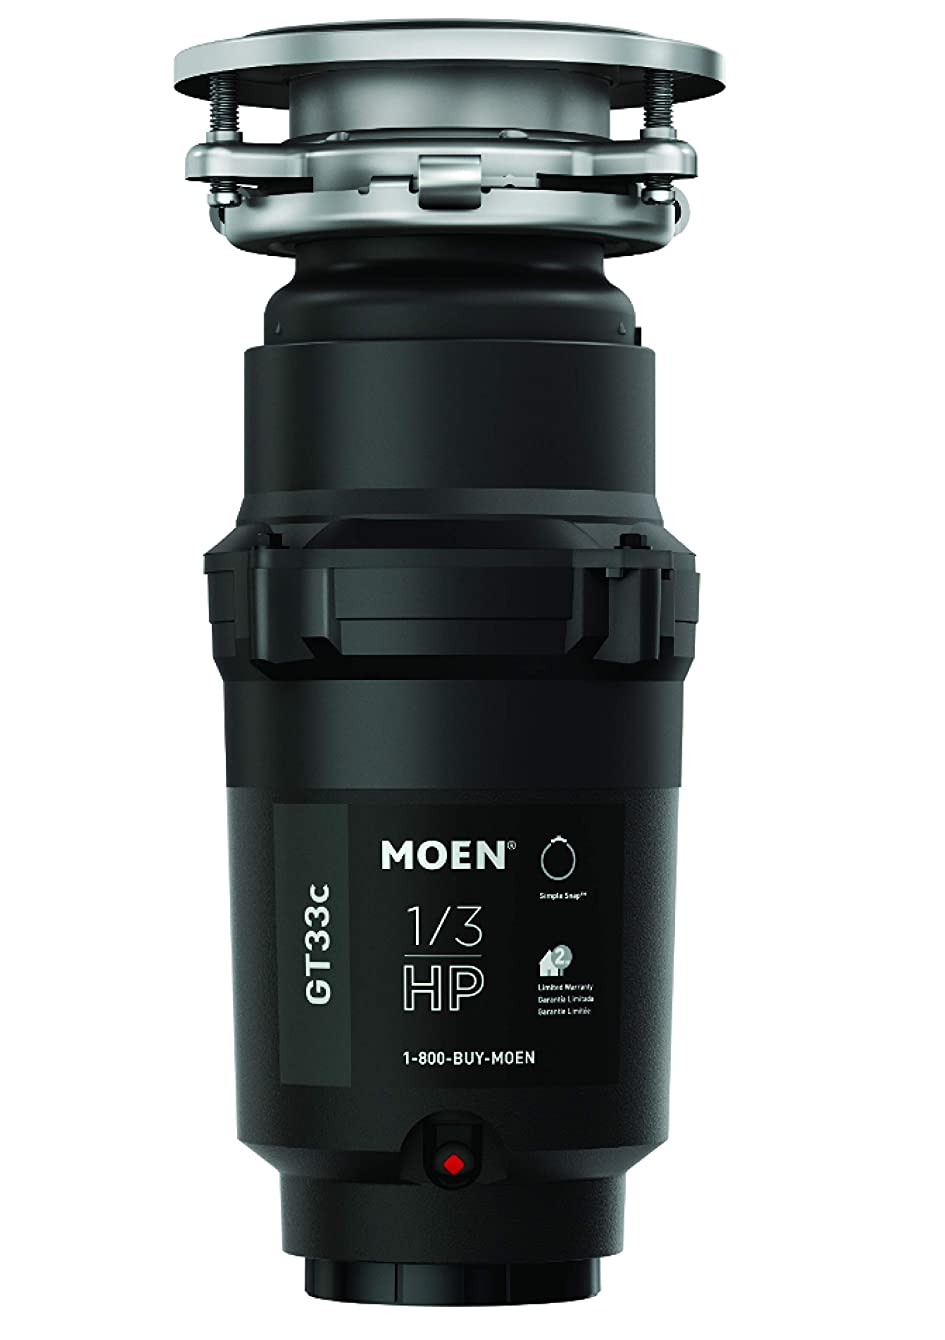 Moen GT33C GT Series 1/3 Horsepower Garbage Disposal, with with Fast Track Technology